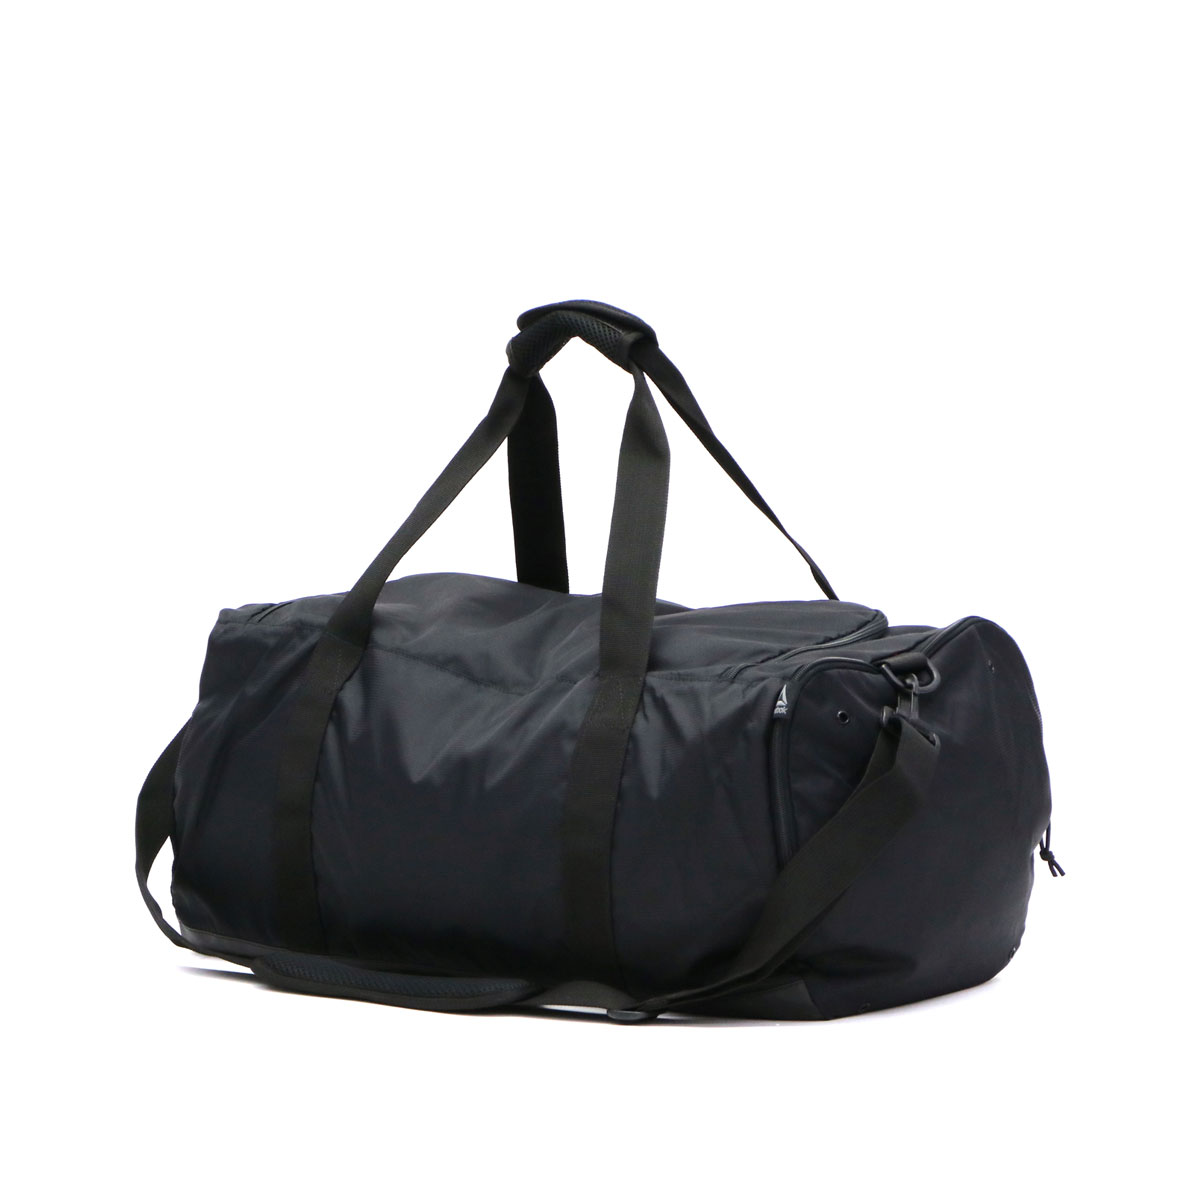 3b4124b752 ... fashion a1432 ae493 Reebok Boston Bag Reebok Active Duffel Bag 2 Way  Duffel Bag 48 L ...